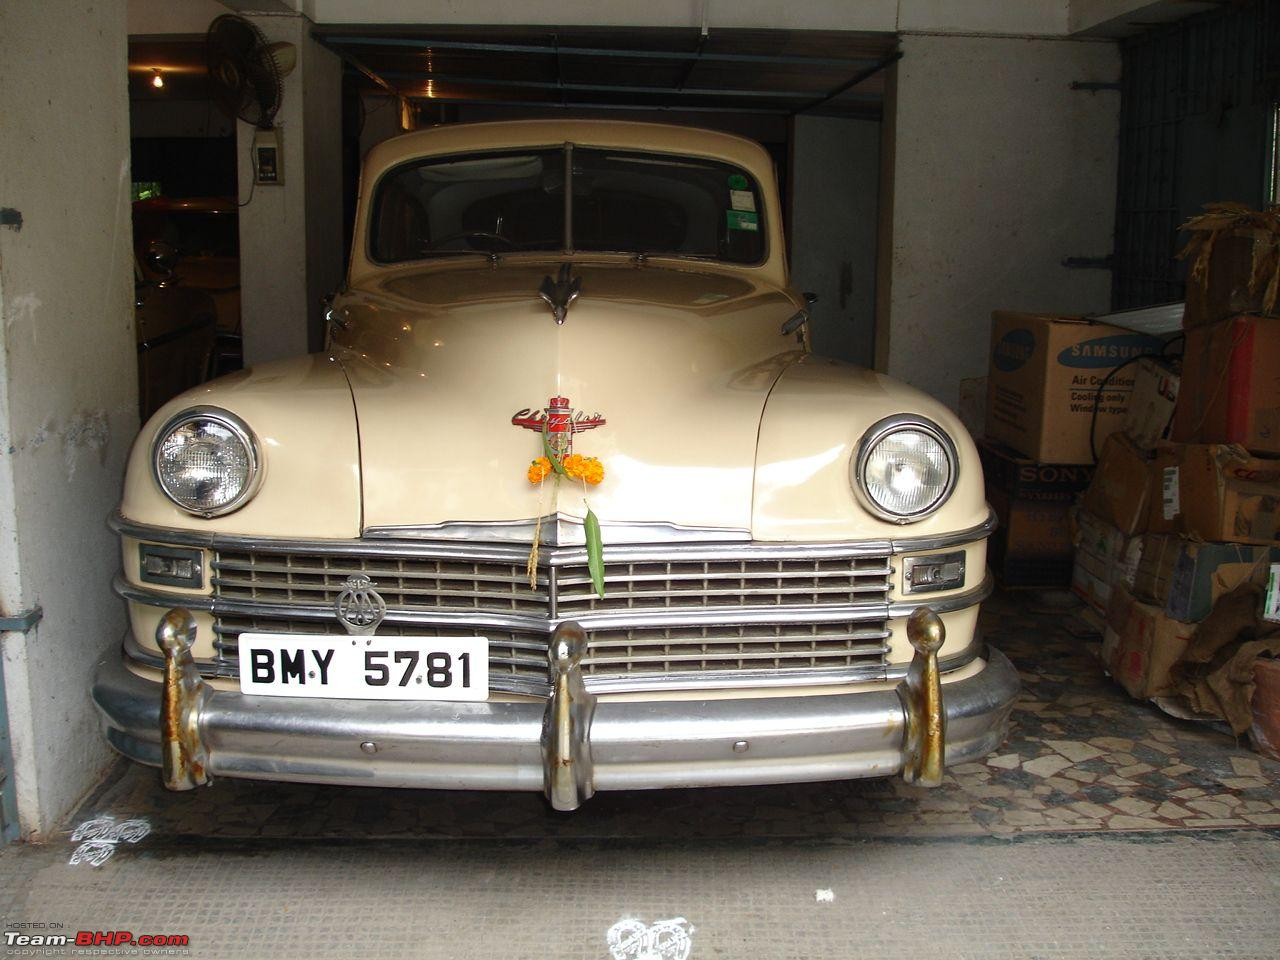 My Pride - 1946 Chrysler